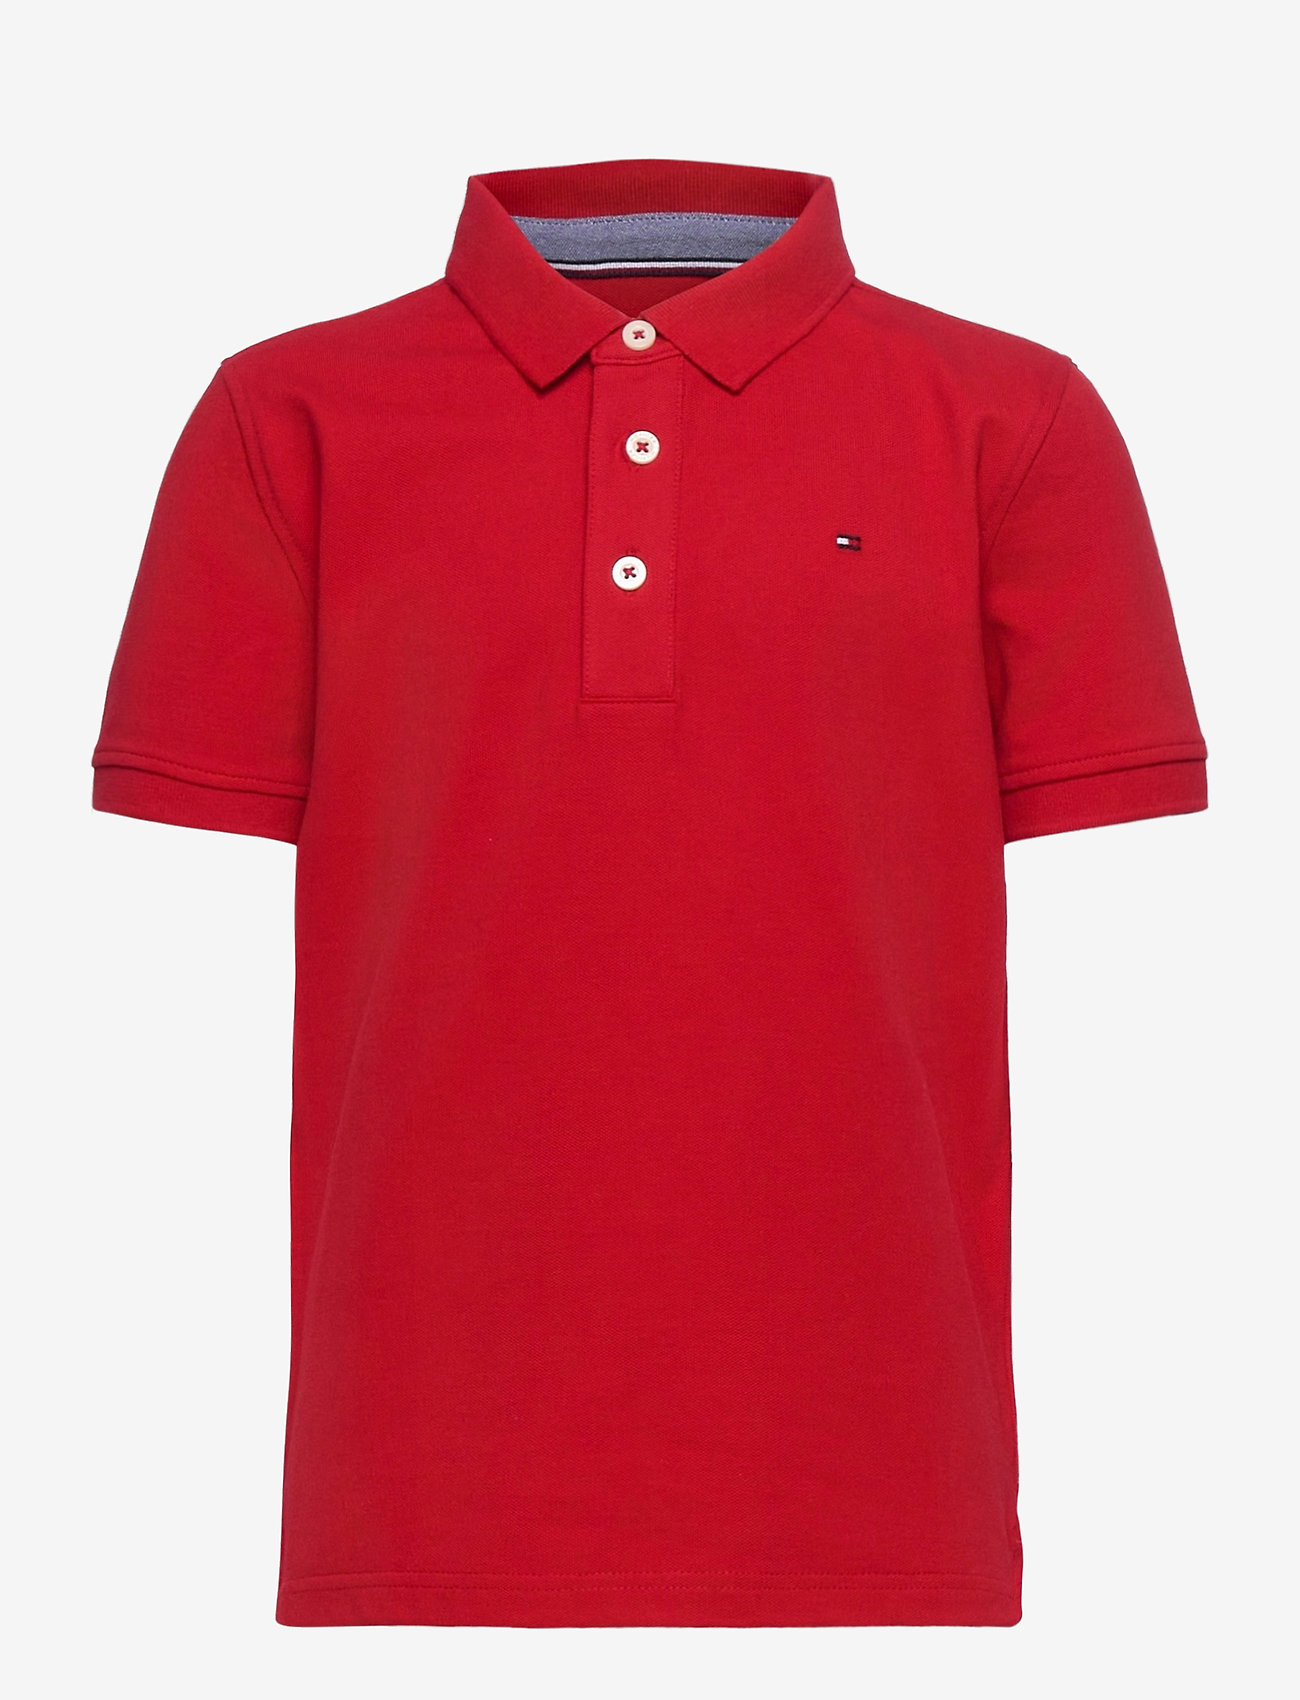 Tommy Hilfiger - BOYS TOMMY POLO S/S - polo shirts - apple red - 0